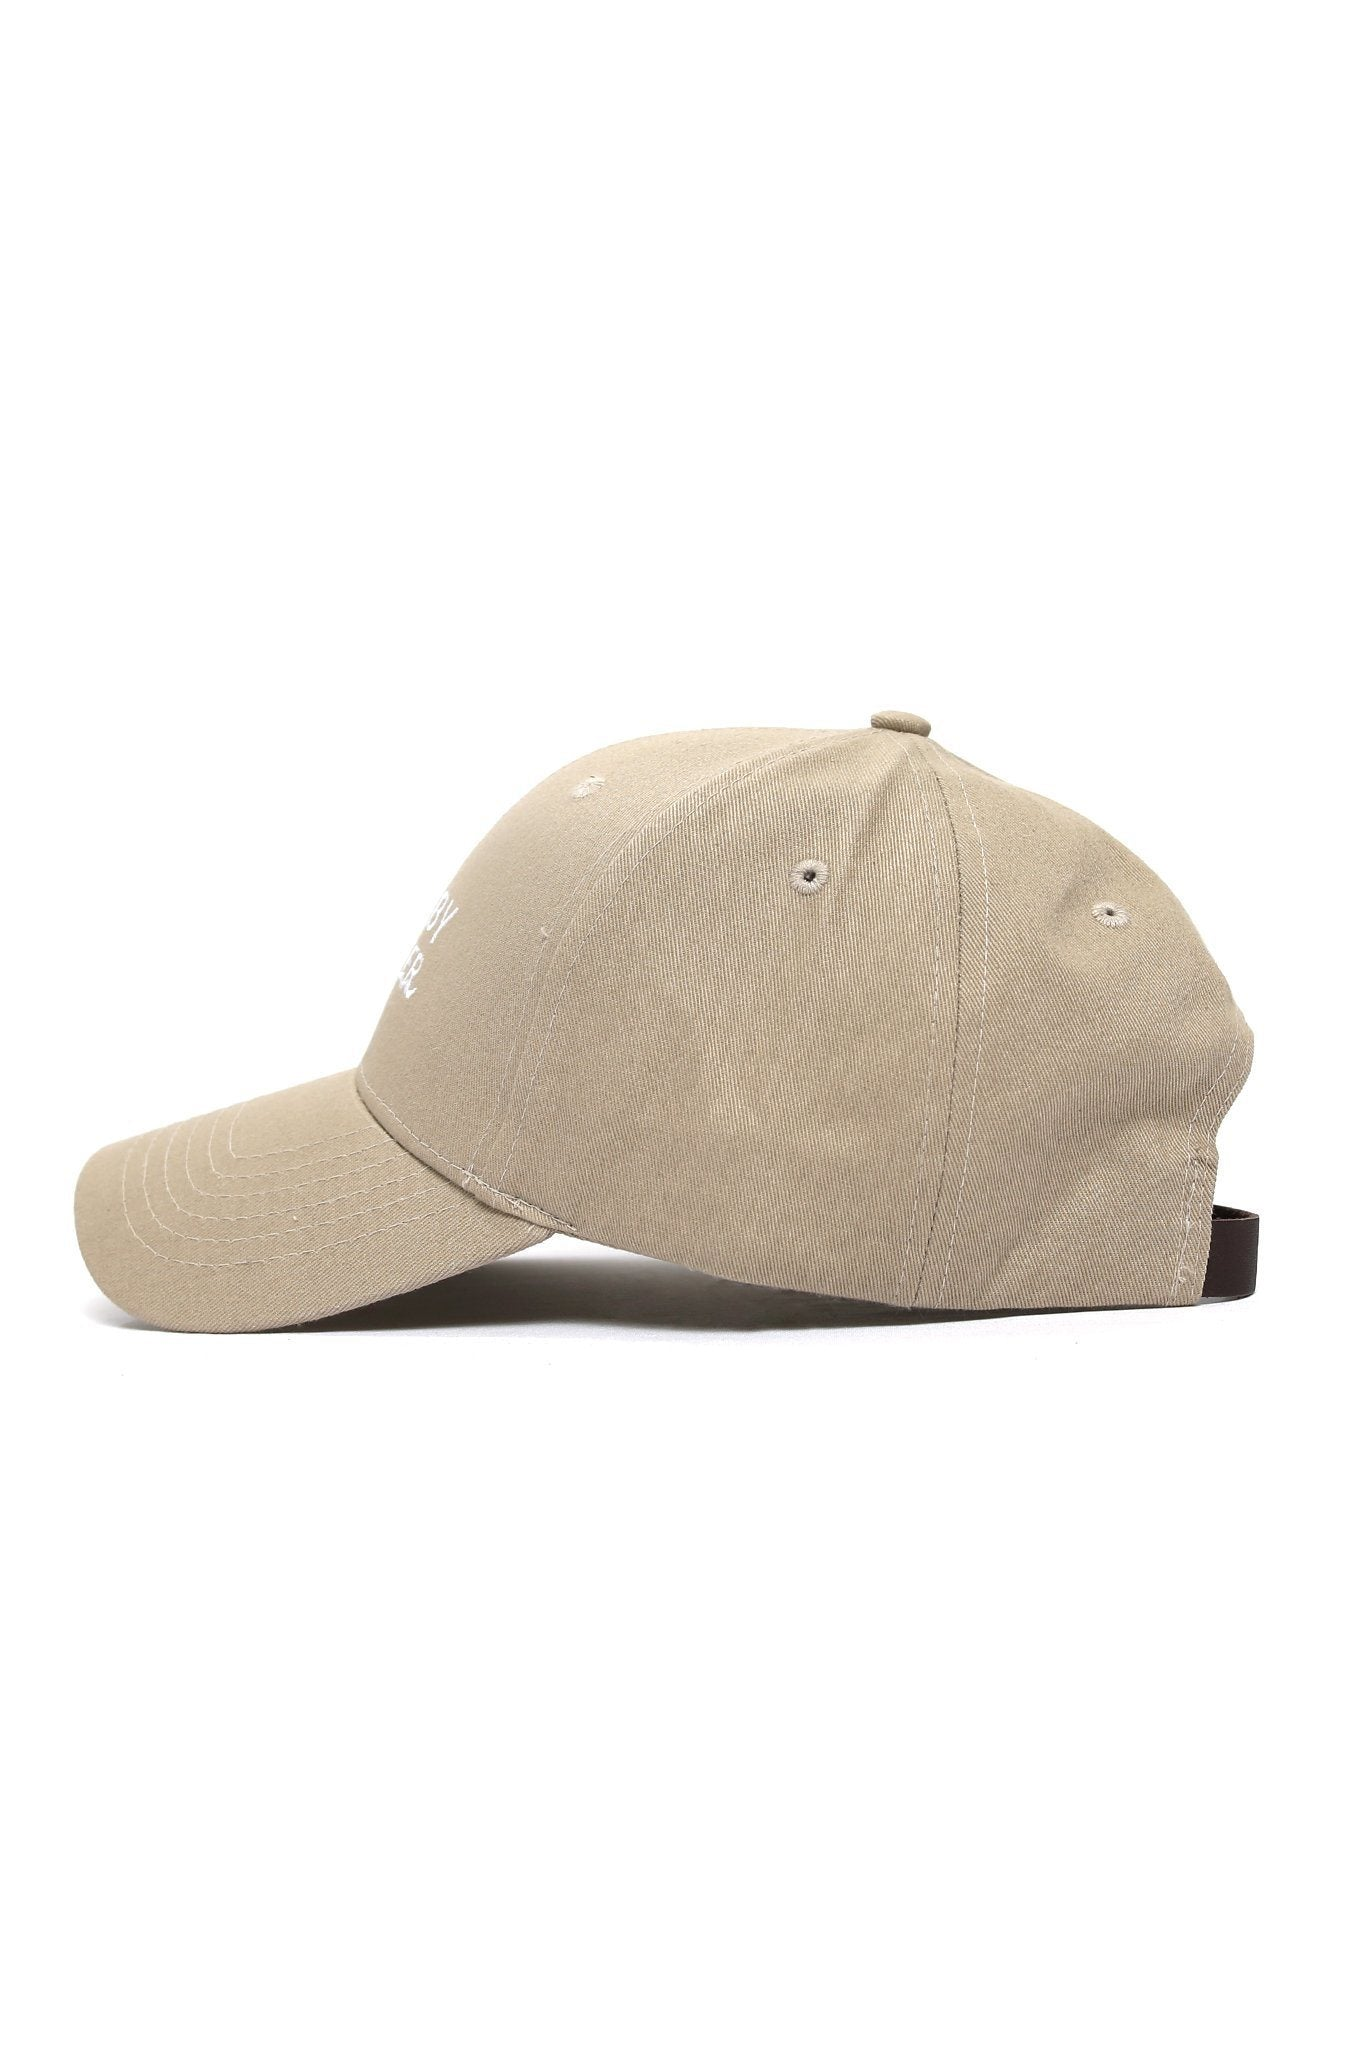 Born By Water Waves Cap - Khaki - Shore